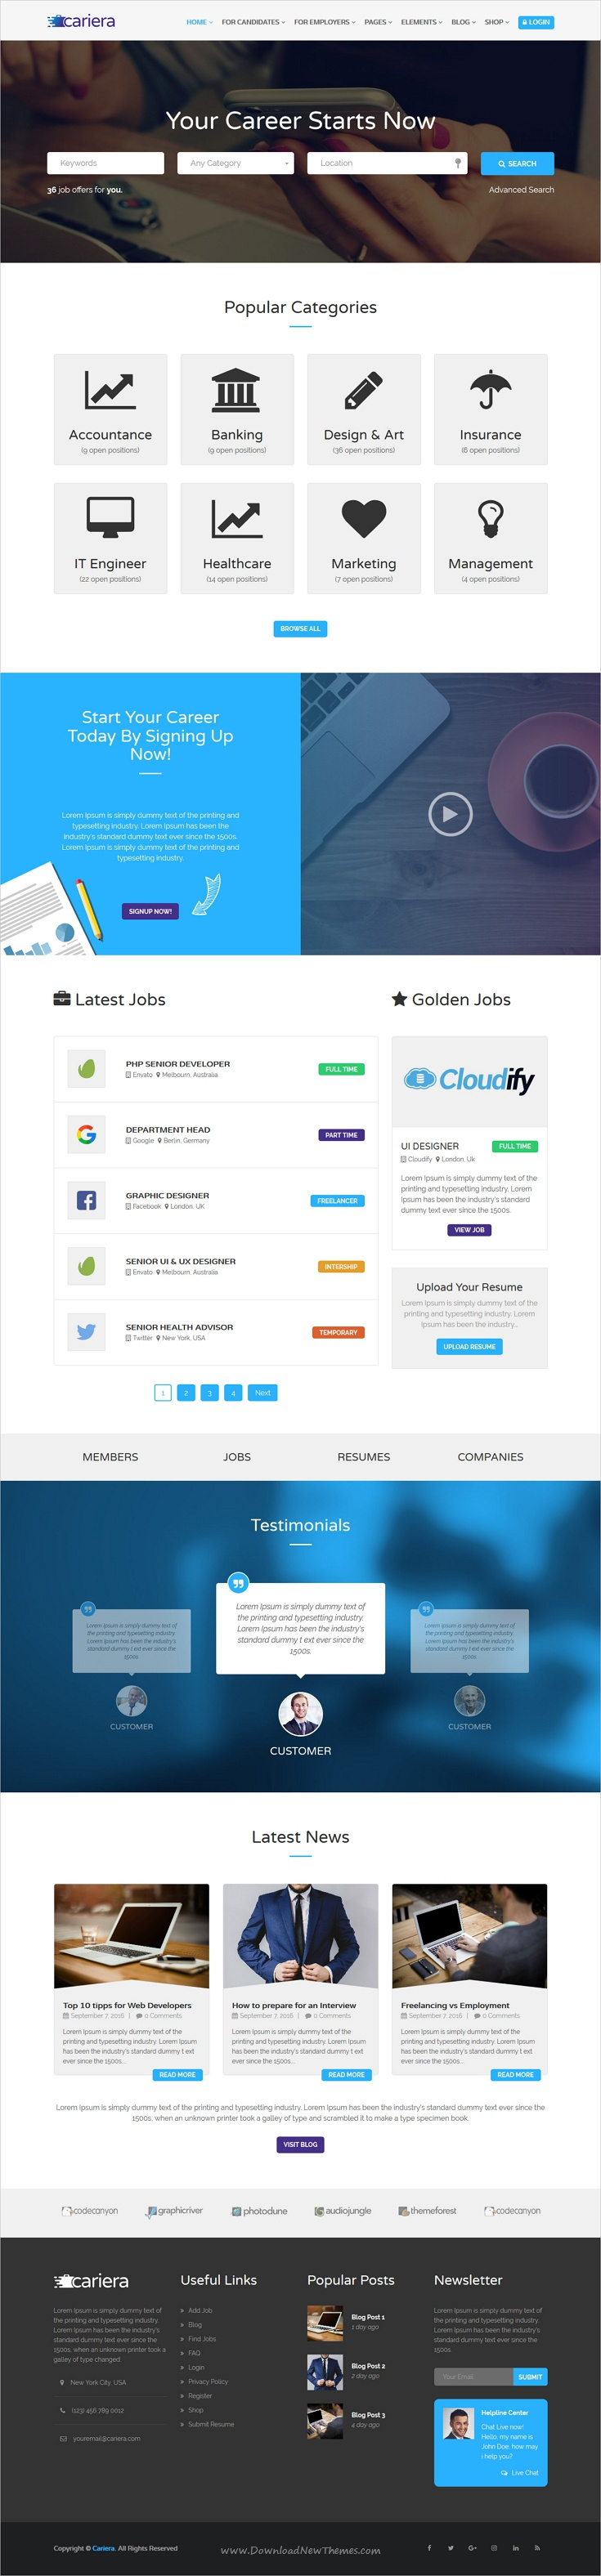 cariera - job board html template free download  Cariera is a clean and professional 3in1 responsive HTML #bootstrap ...